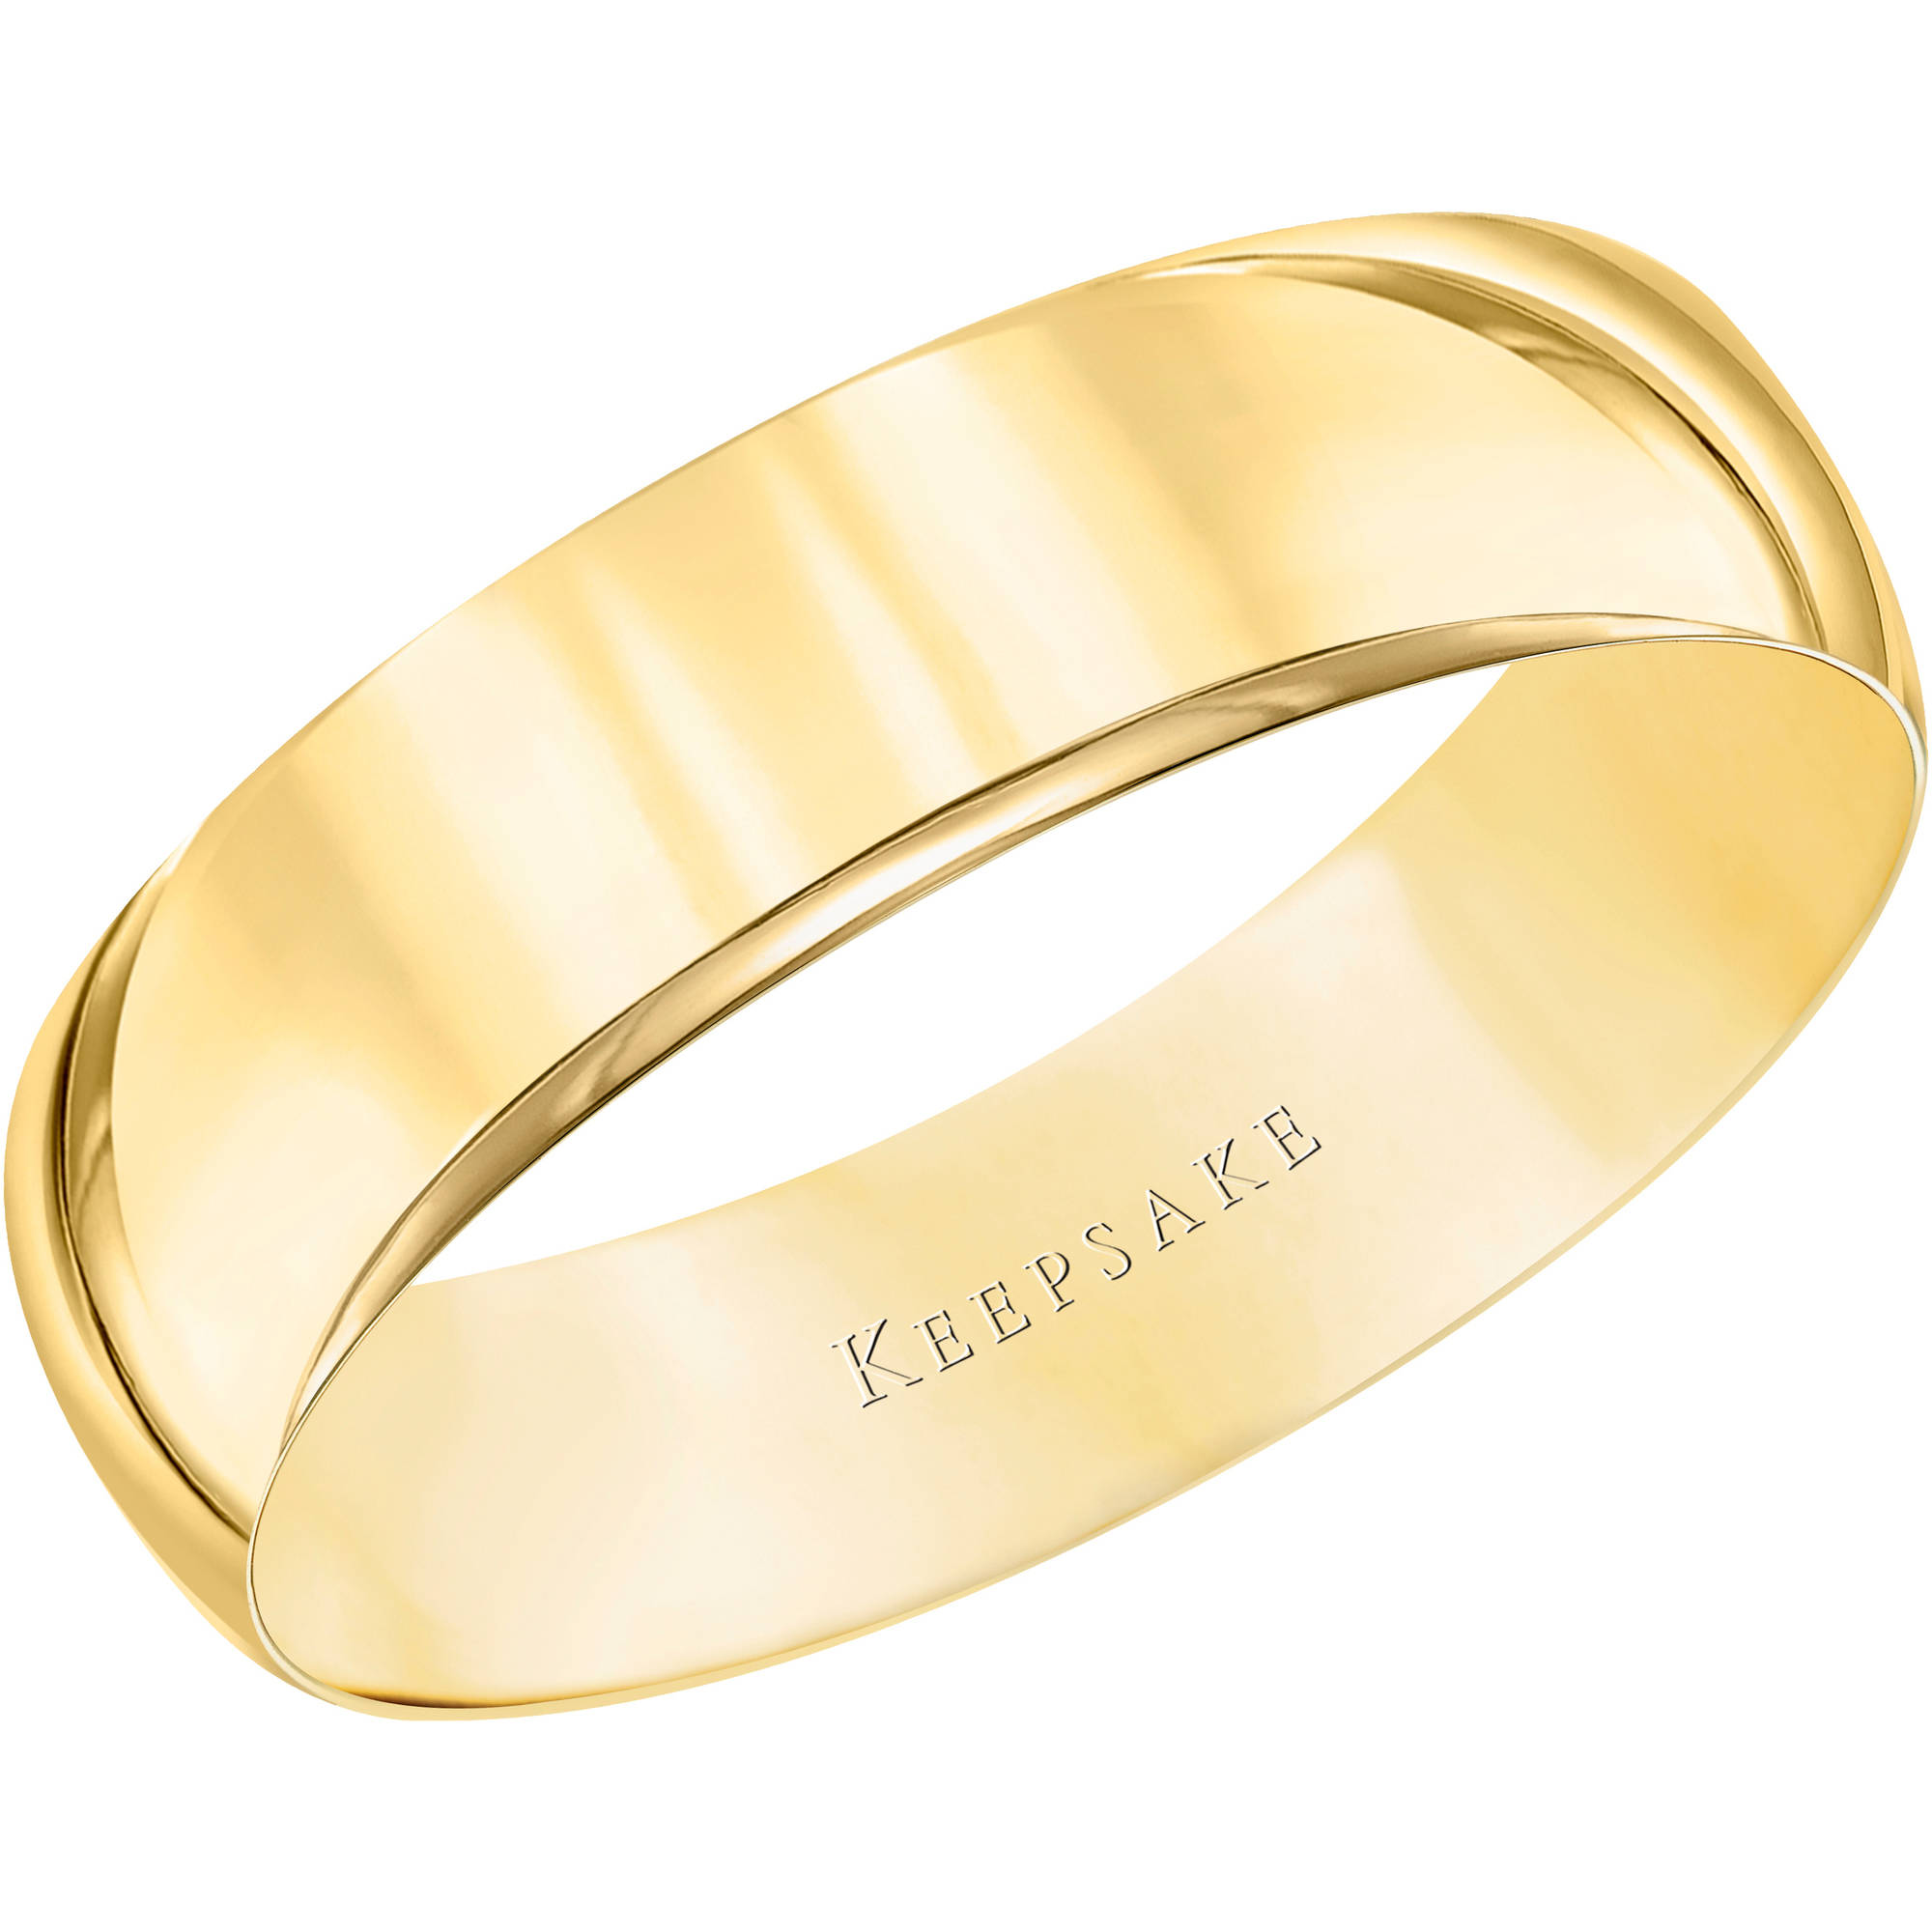 Women's Keepsake 10kt Yellow Gold Wedding Band With High-Polish Finish, 5mm